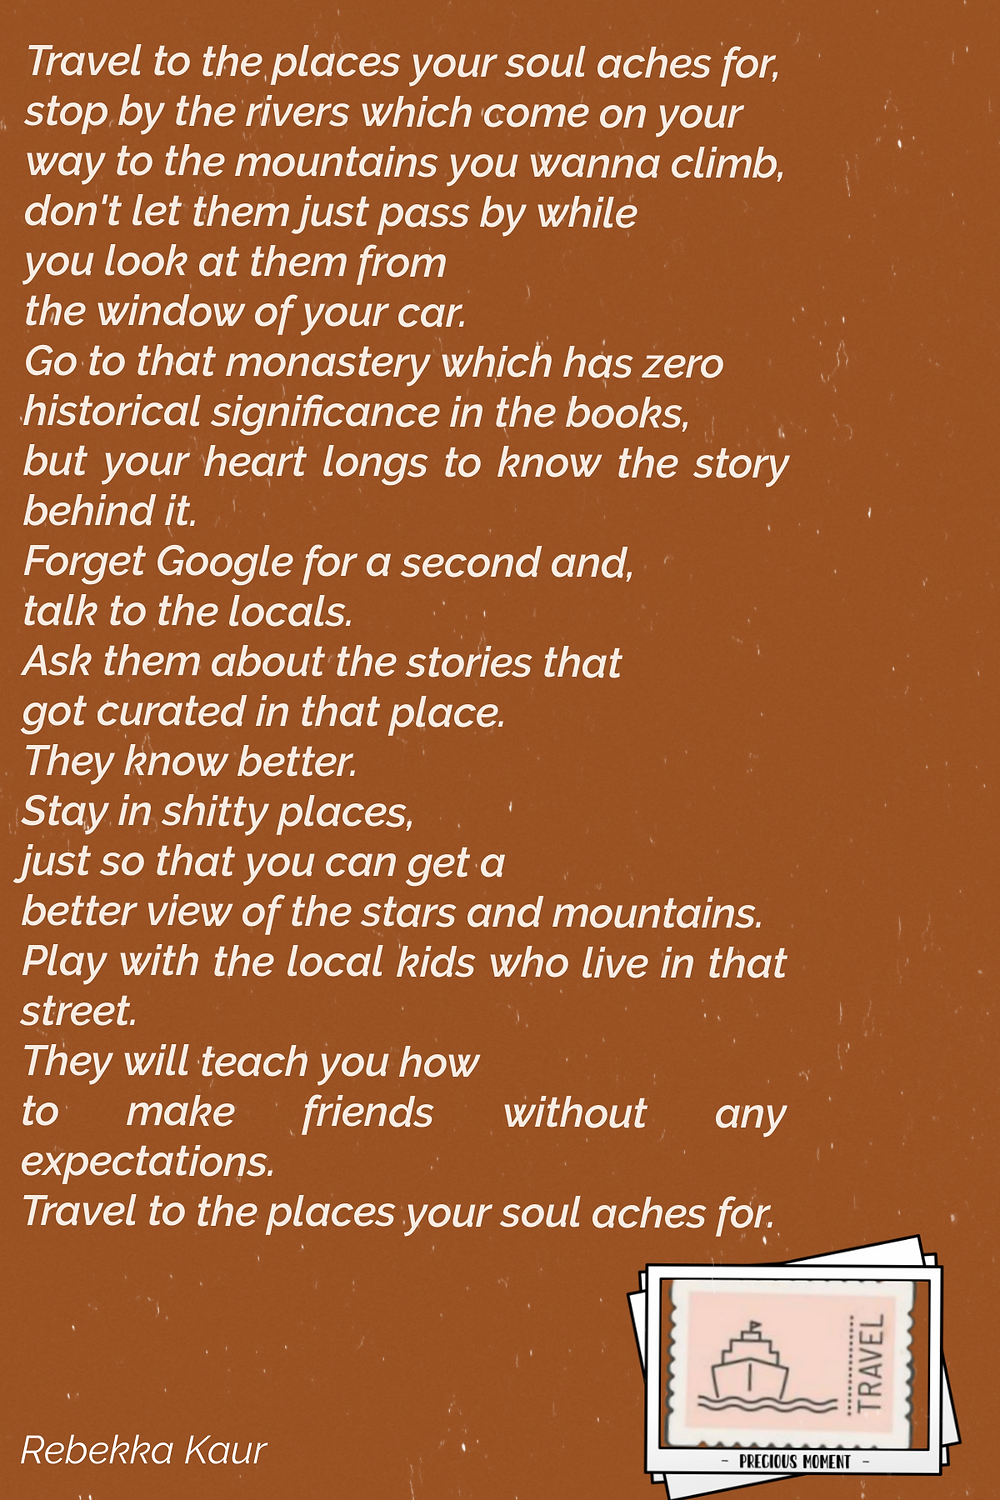 poetry on traveling and exploring by Rebekka Kaur